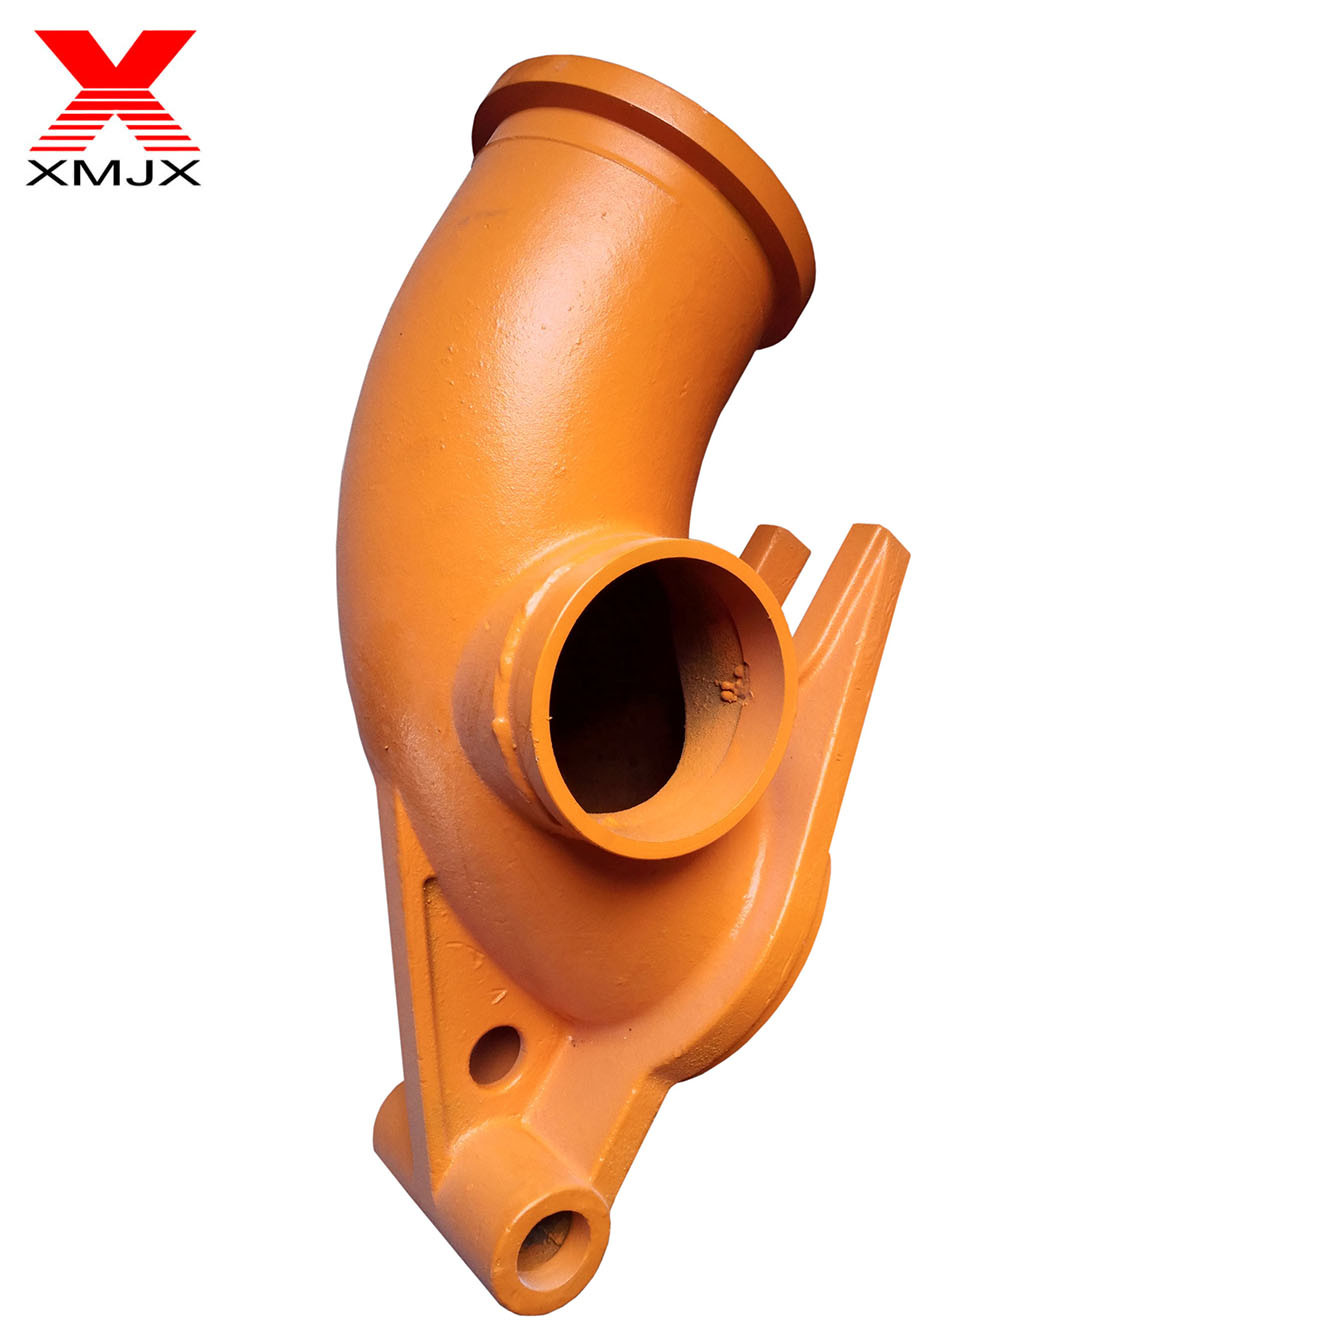 Wholesale Price China Pumpcon - Schwing Hinged Chain Elbow for Constrution Industry in Ximai Machinery – Ximai